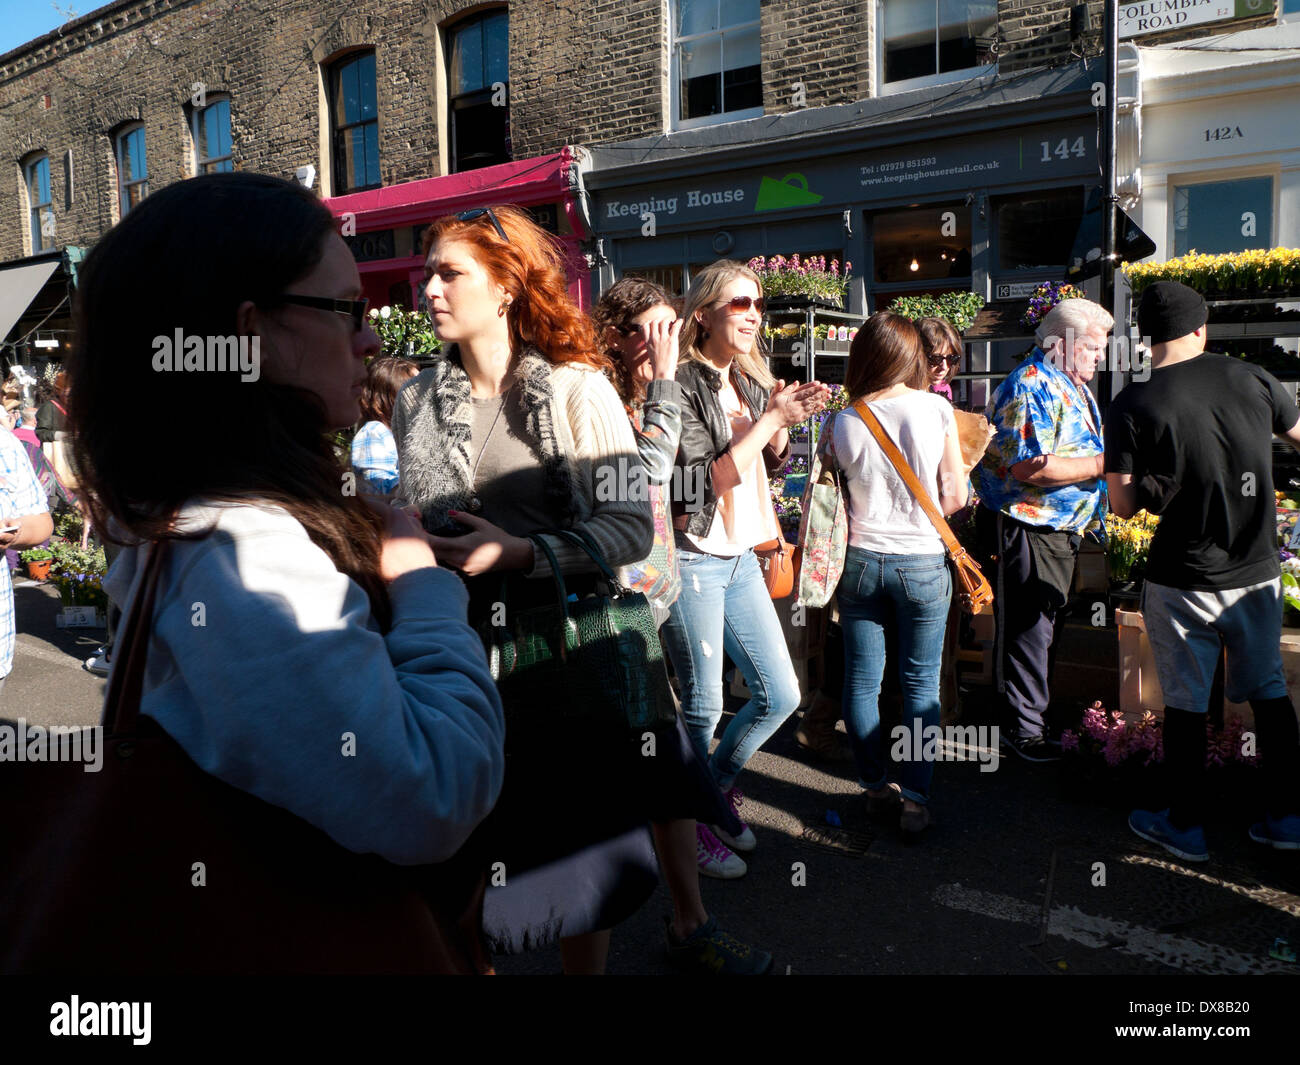 People in the street at Columbia Road Flower Market London E2 UK KATHY DEWITT - Stock Image